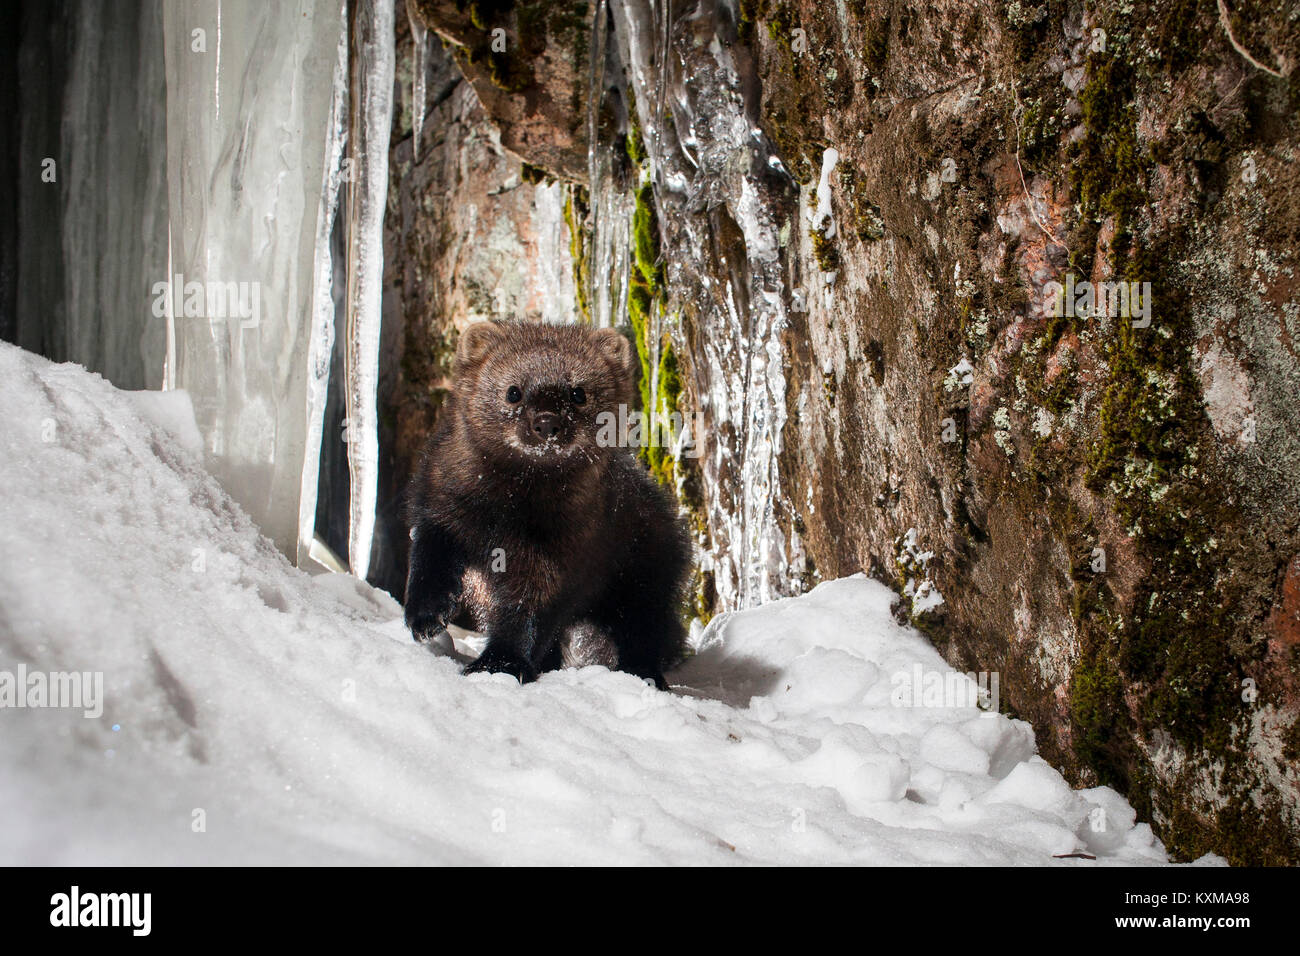 MAYNOOTH, HASTINGS HIGHLANDS, ONTARIO, CANADA - January 10, 2018: A fisher (Martes Pennanti), part of the weasel - Stock Image